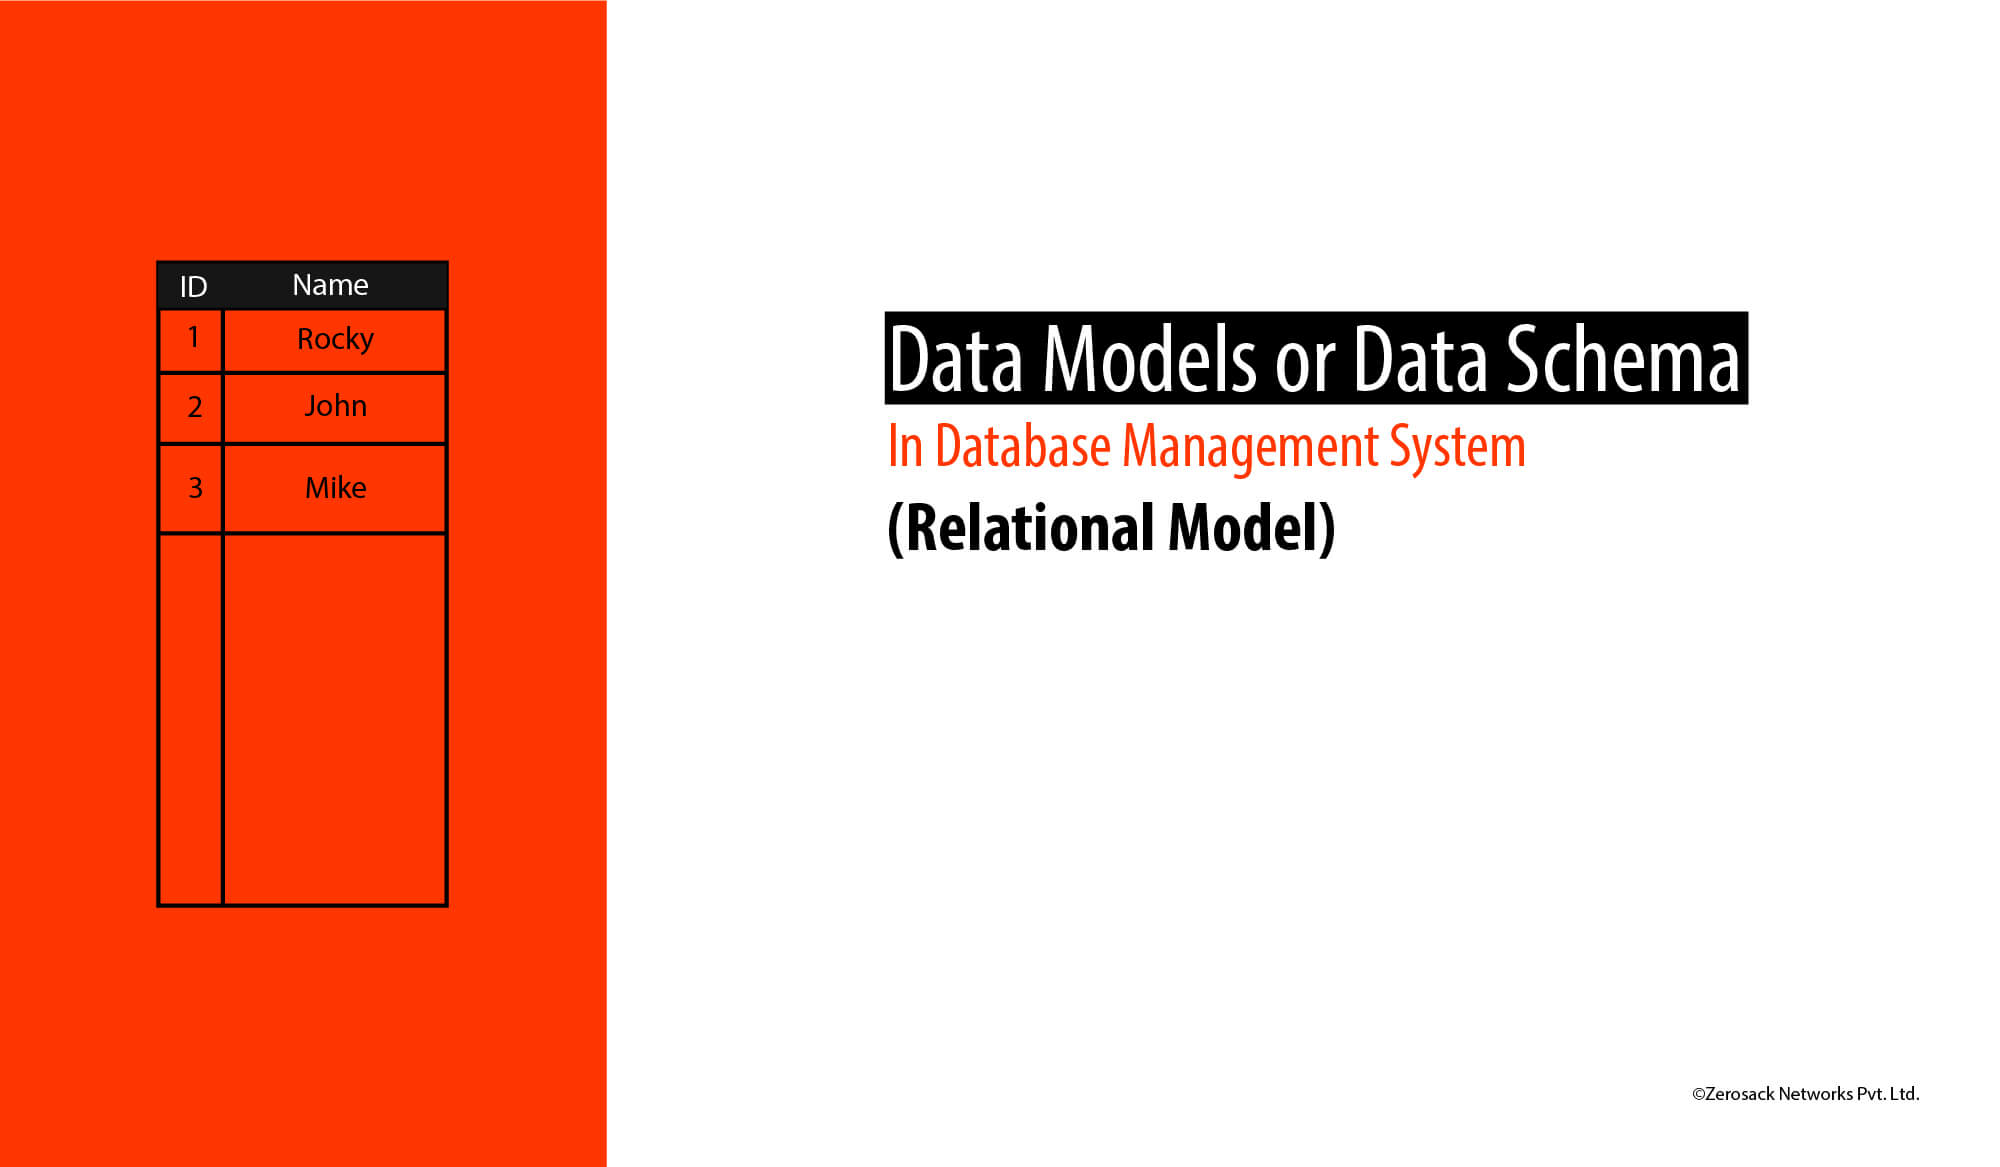 Relational-Data-Model-In-Database-Management-System-